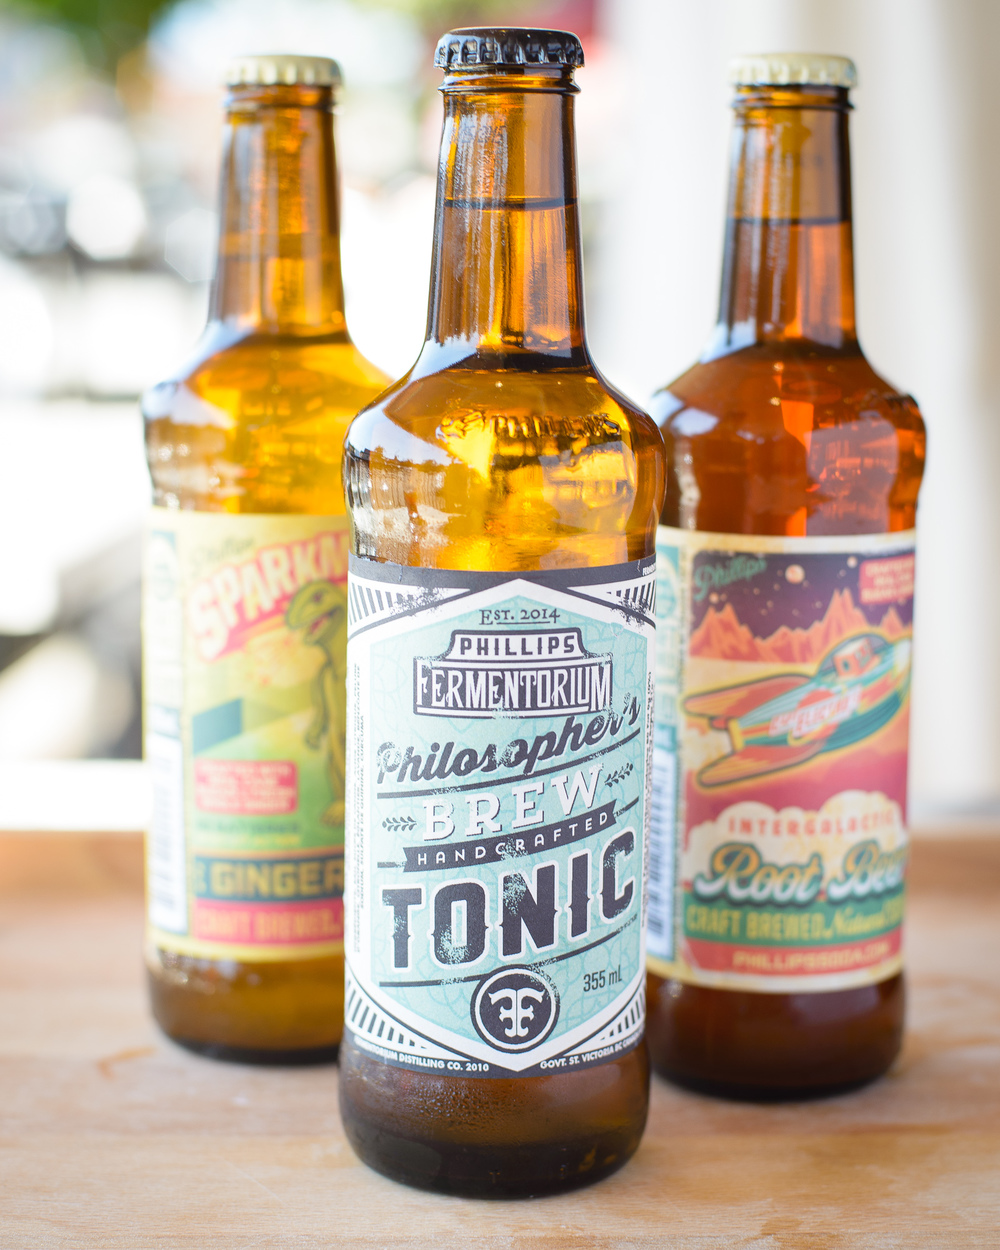 Phillips fermentorium soda tonic, root beer and ginger ale summer food photography